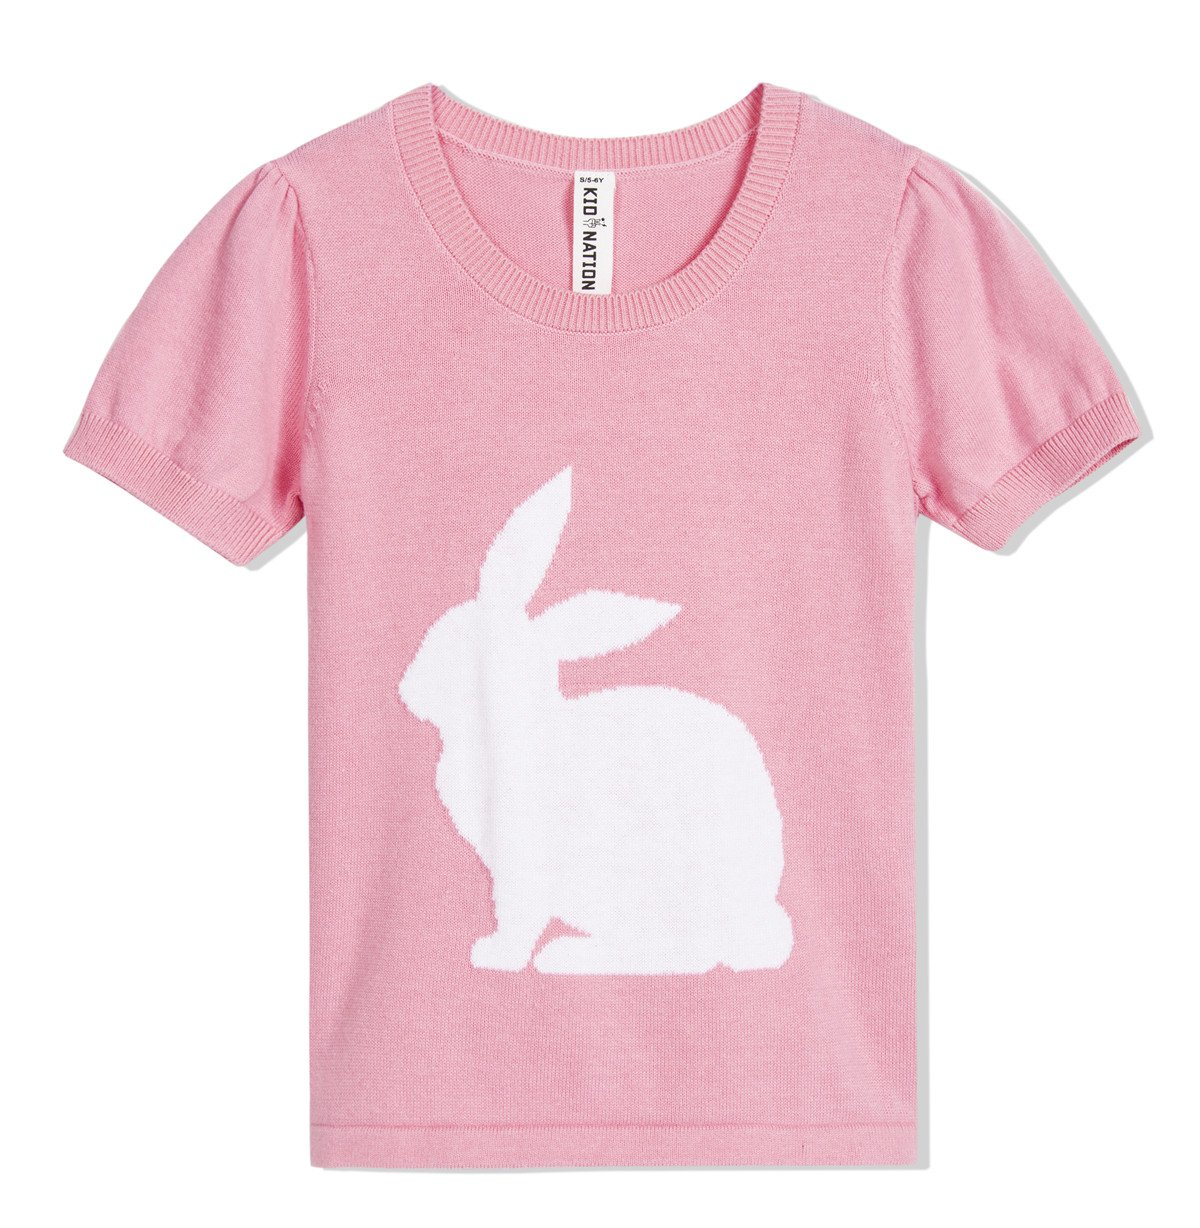 Kid Nation Girls' Pullover Easter Rabbit Short Sleeve Round Neck Sweater Pink